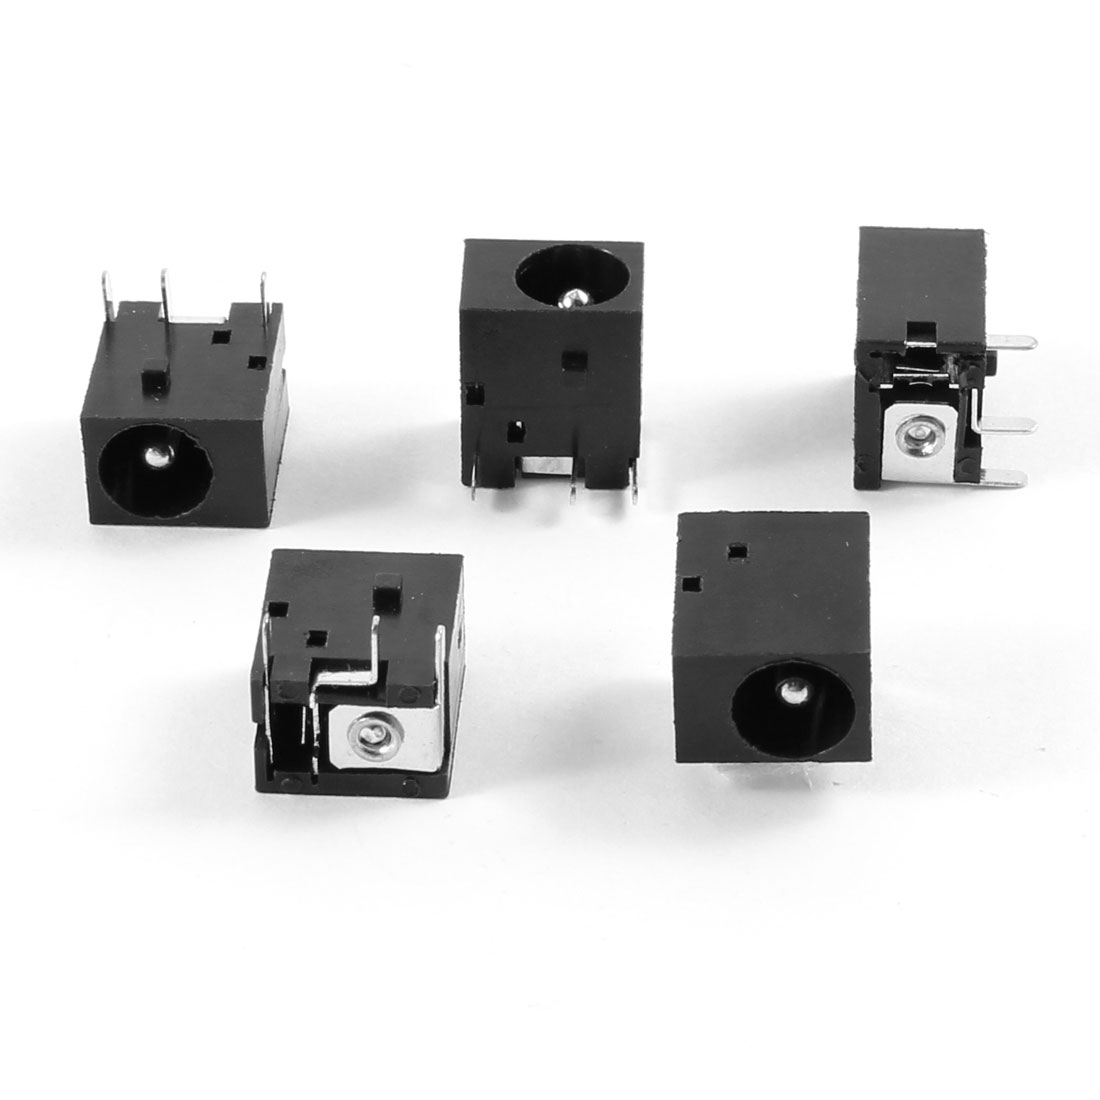 5 Pcs PJ003B DC Power Jack Connector for Gateway Solo 1150 3300 3350 3450 5300